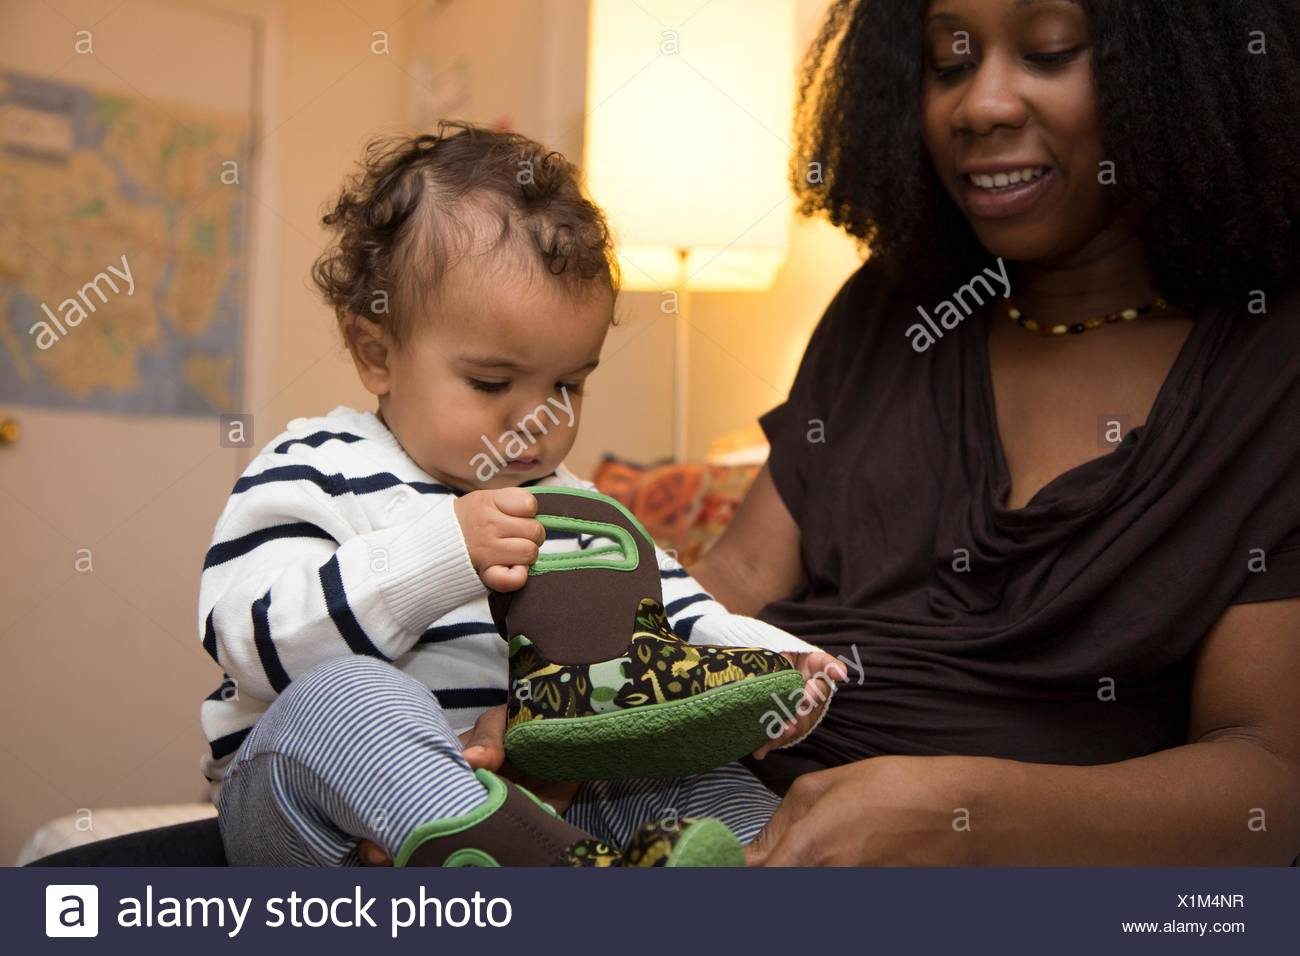 Mid adult woman and curious toddler daughter with baby boot - Stock Image